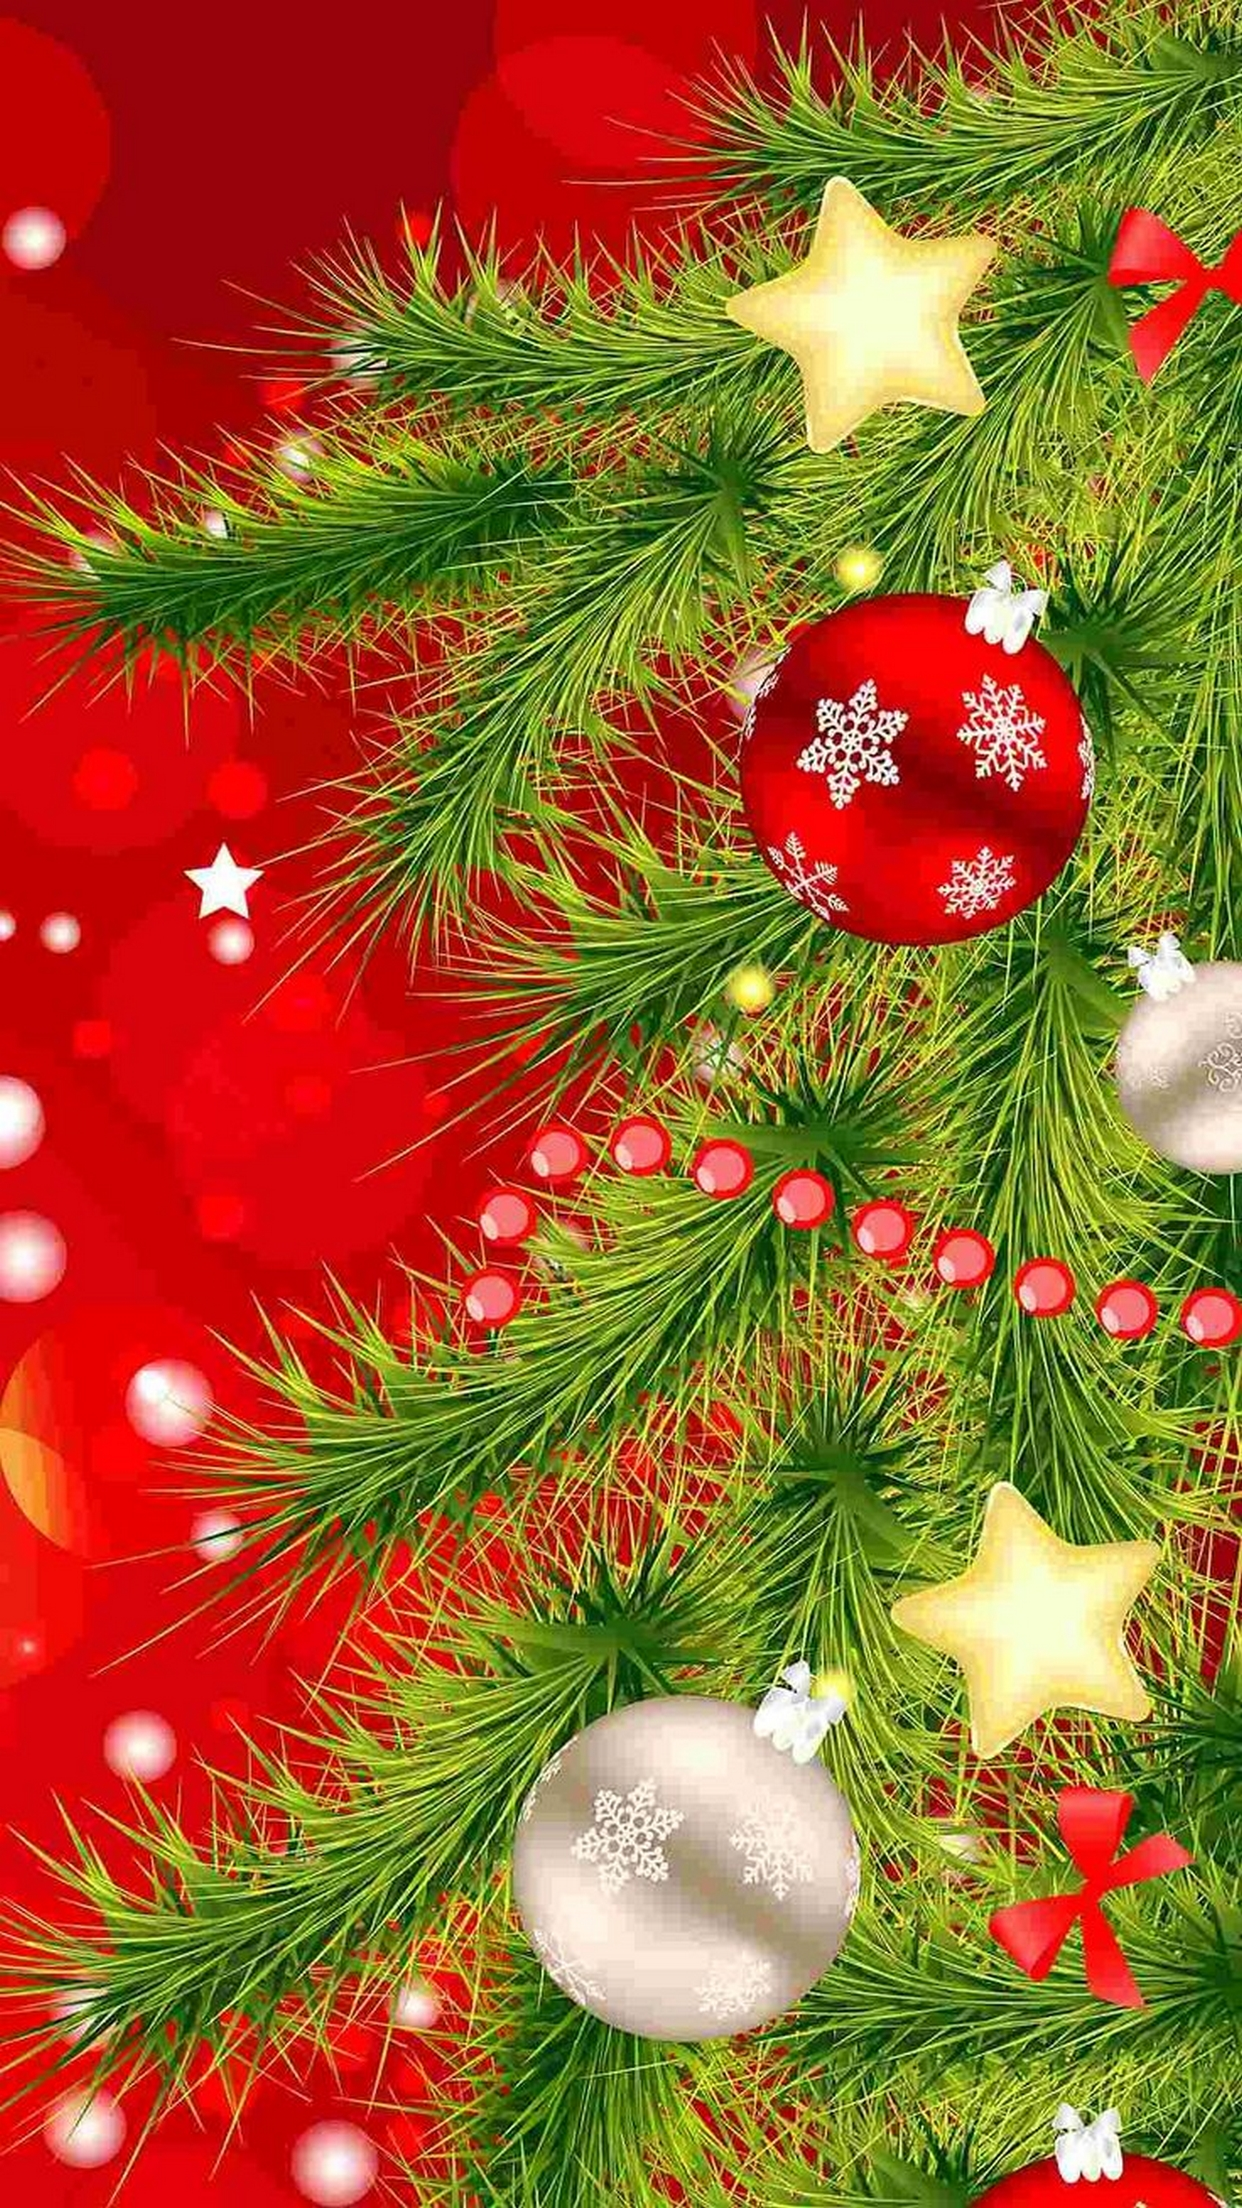 Sfondi Natale Hd Per Iphone.Free Download 30 Christmas Wallpapers For Iphones 1242x2208 For Your Desktop Mobile Tablet Explore 57 Christmas Wallpapers For Iphone Christmas Iphone Wallpaper Christmas Wallpapers For Iphone Christmas Wallpaper For Iphone